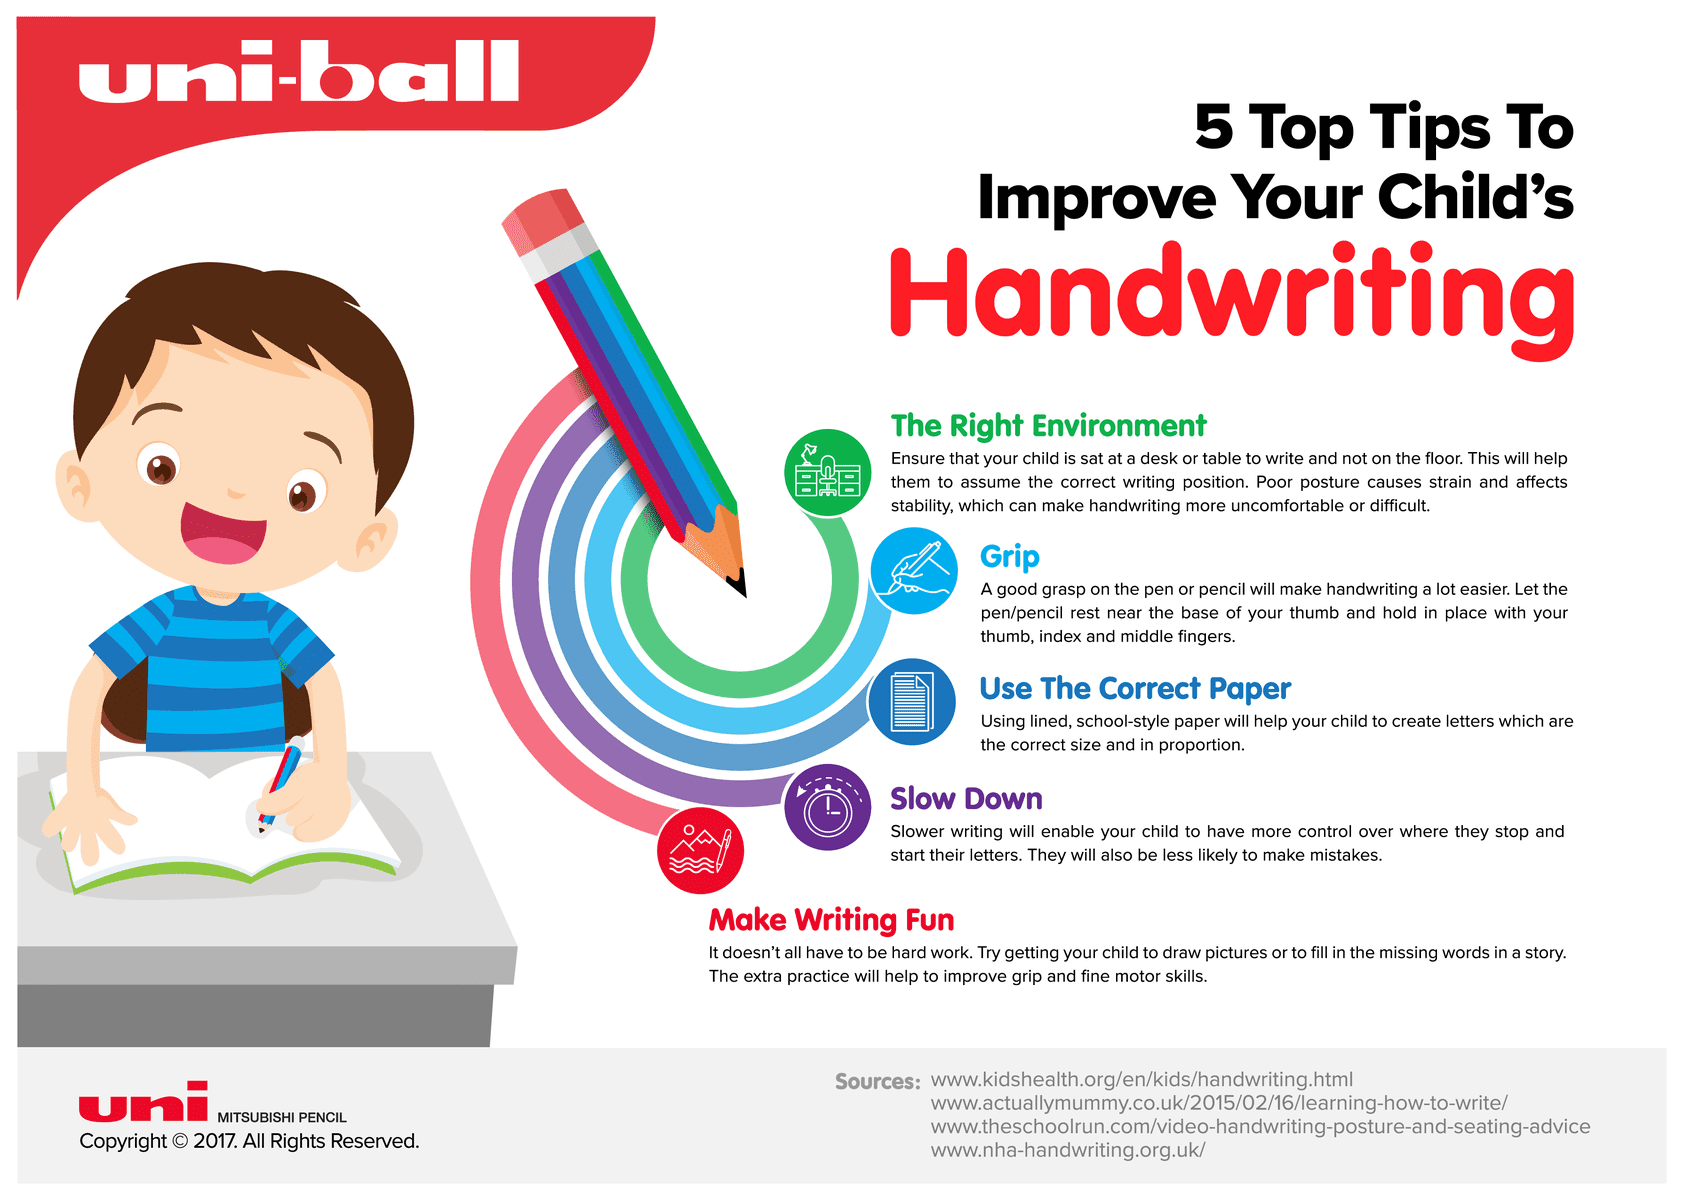 Handwriting | Does your child struggle with handwriting and do you think it is as important for children today who are living in a digital age? Find out why handwriting is important and get some great tips and worksheets to help them to improve their writing, whether they're just starting out or trying to improve their letter formation.